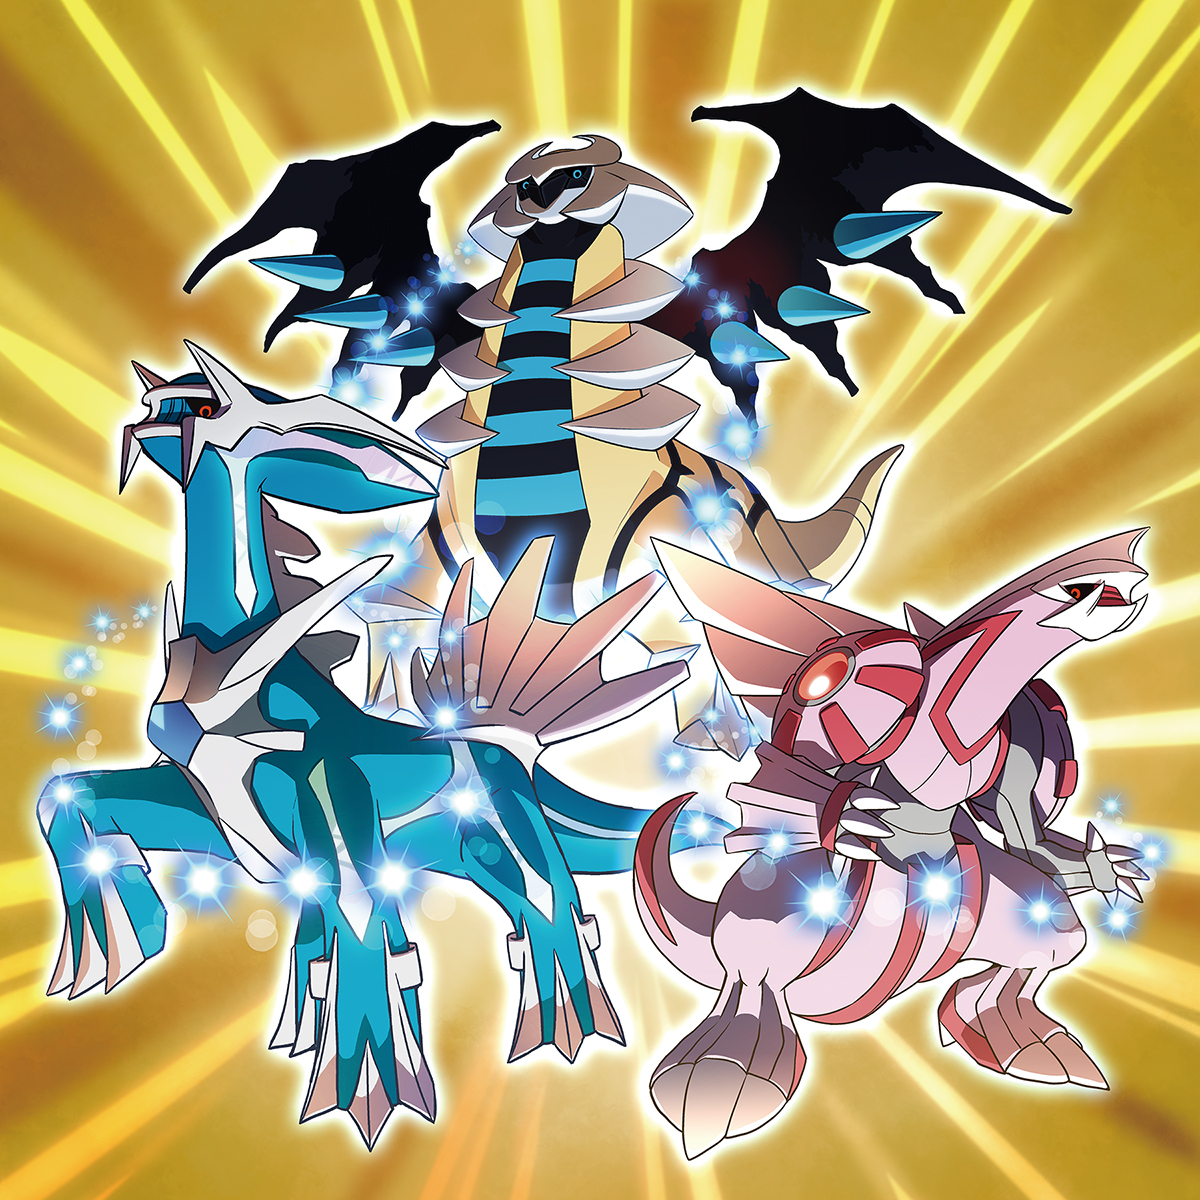 Get Your Extremely Rare Shiny Version of the Legendary Pokémon Dialga Only at GameStop Stores